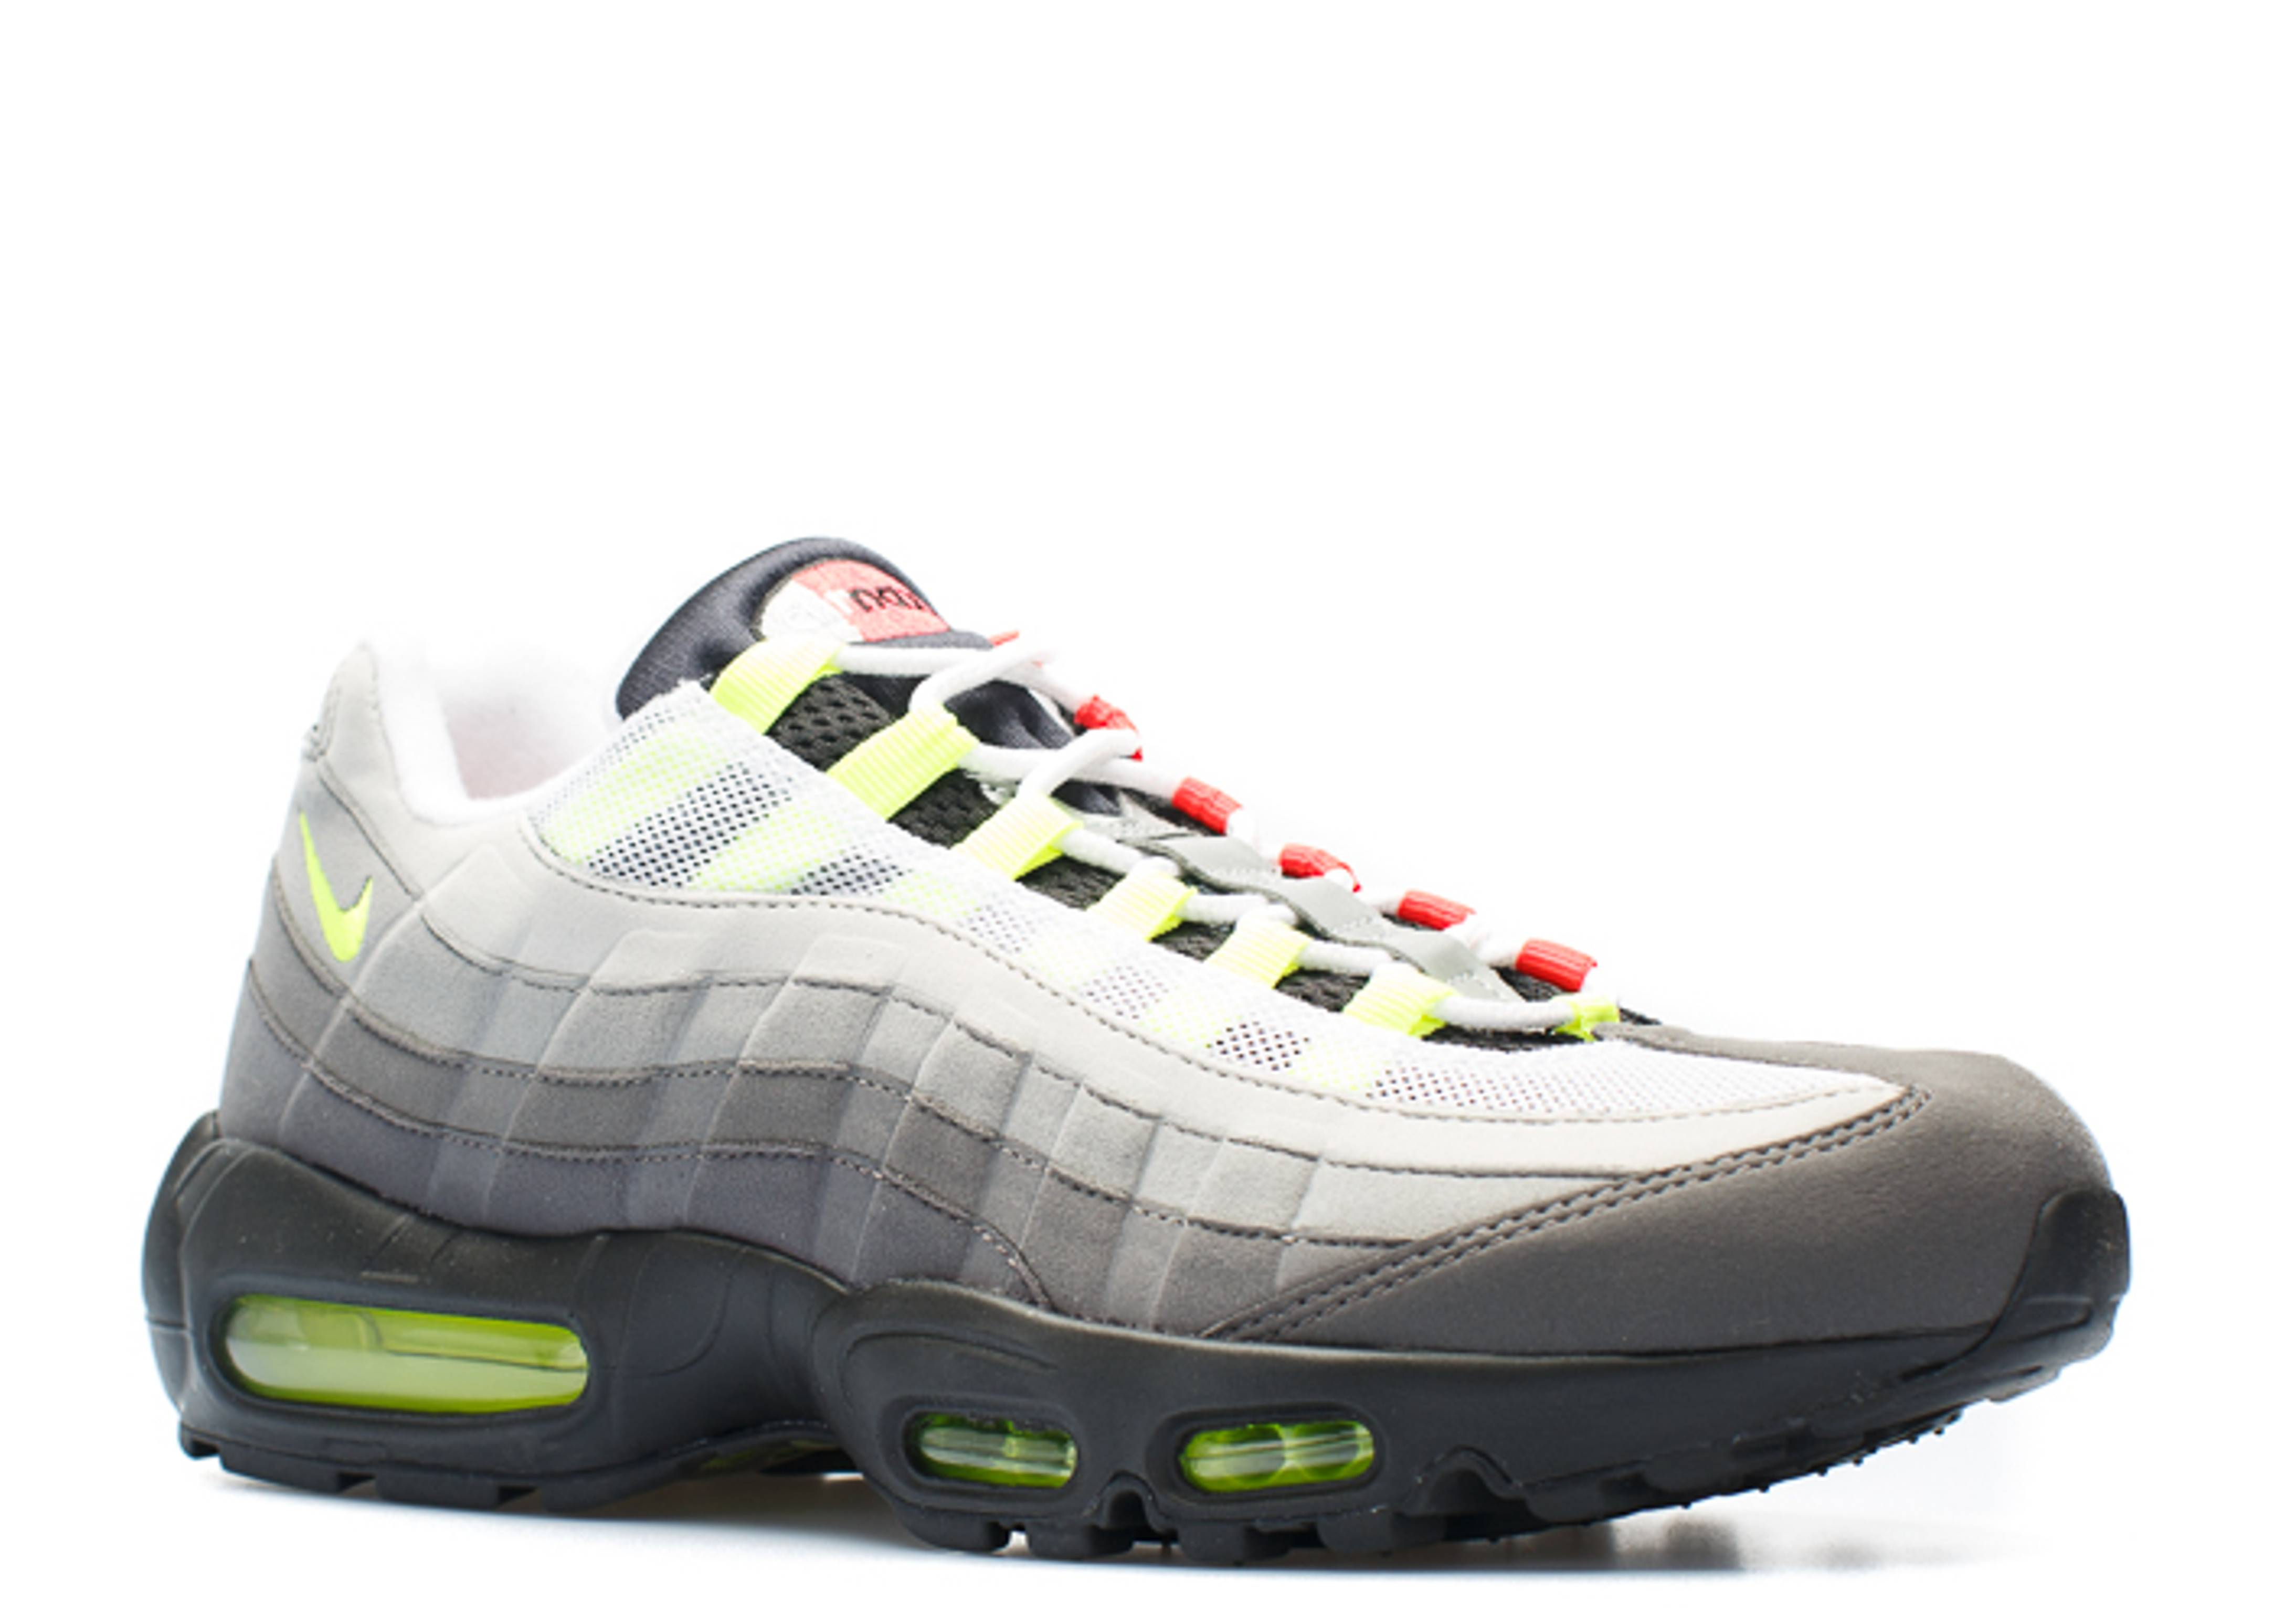 9034158656 9a62a 59f42; shopping where to buy nike air max 95 greedy 366da 4a241